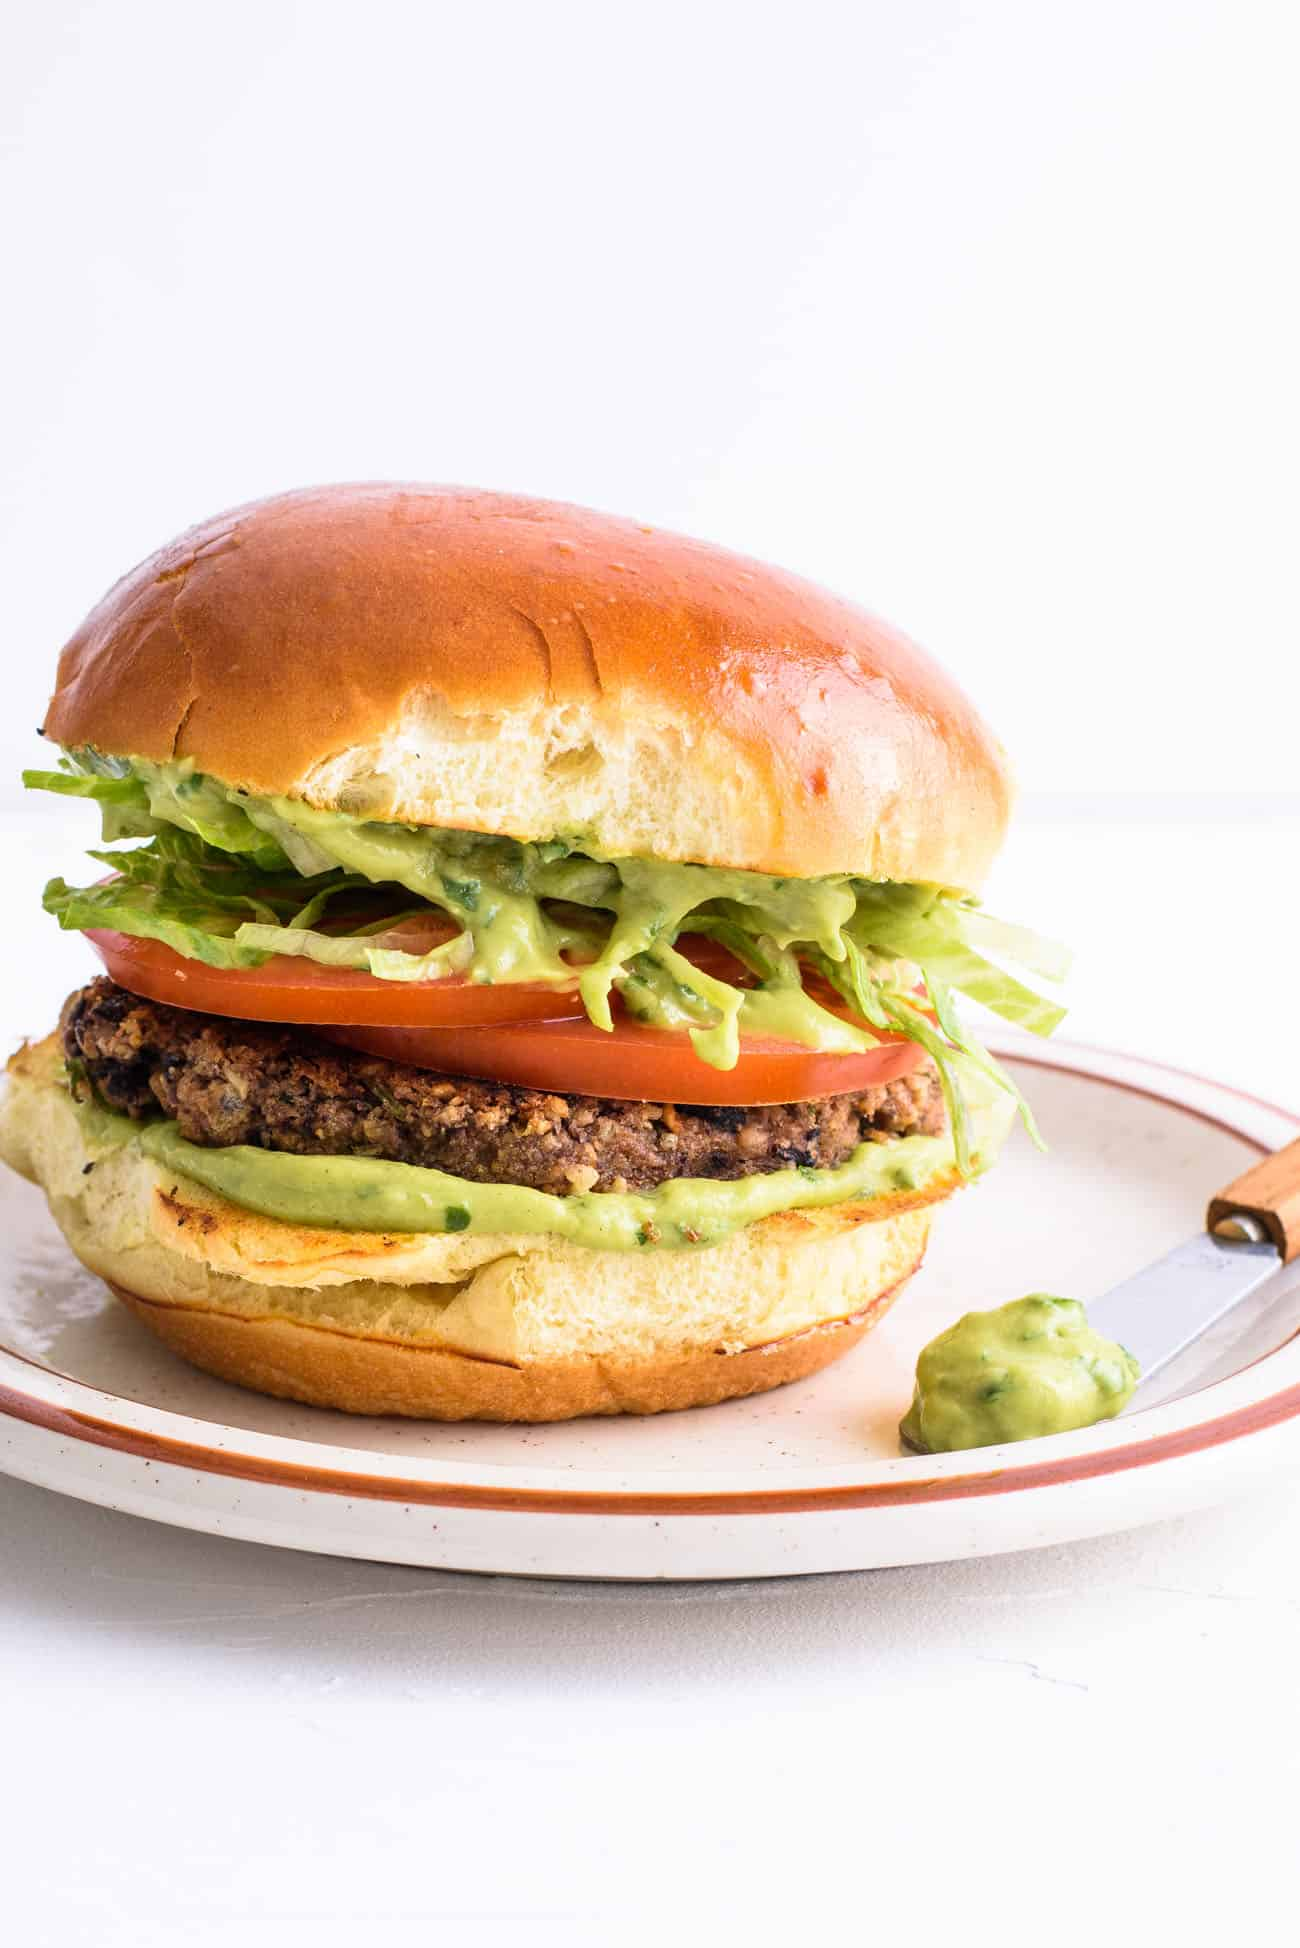 Close-up on vegan black bean burger on a toasted brioche bun with guacamole, lettuce and tomatoes